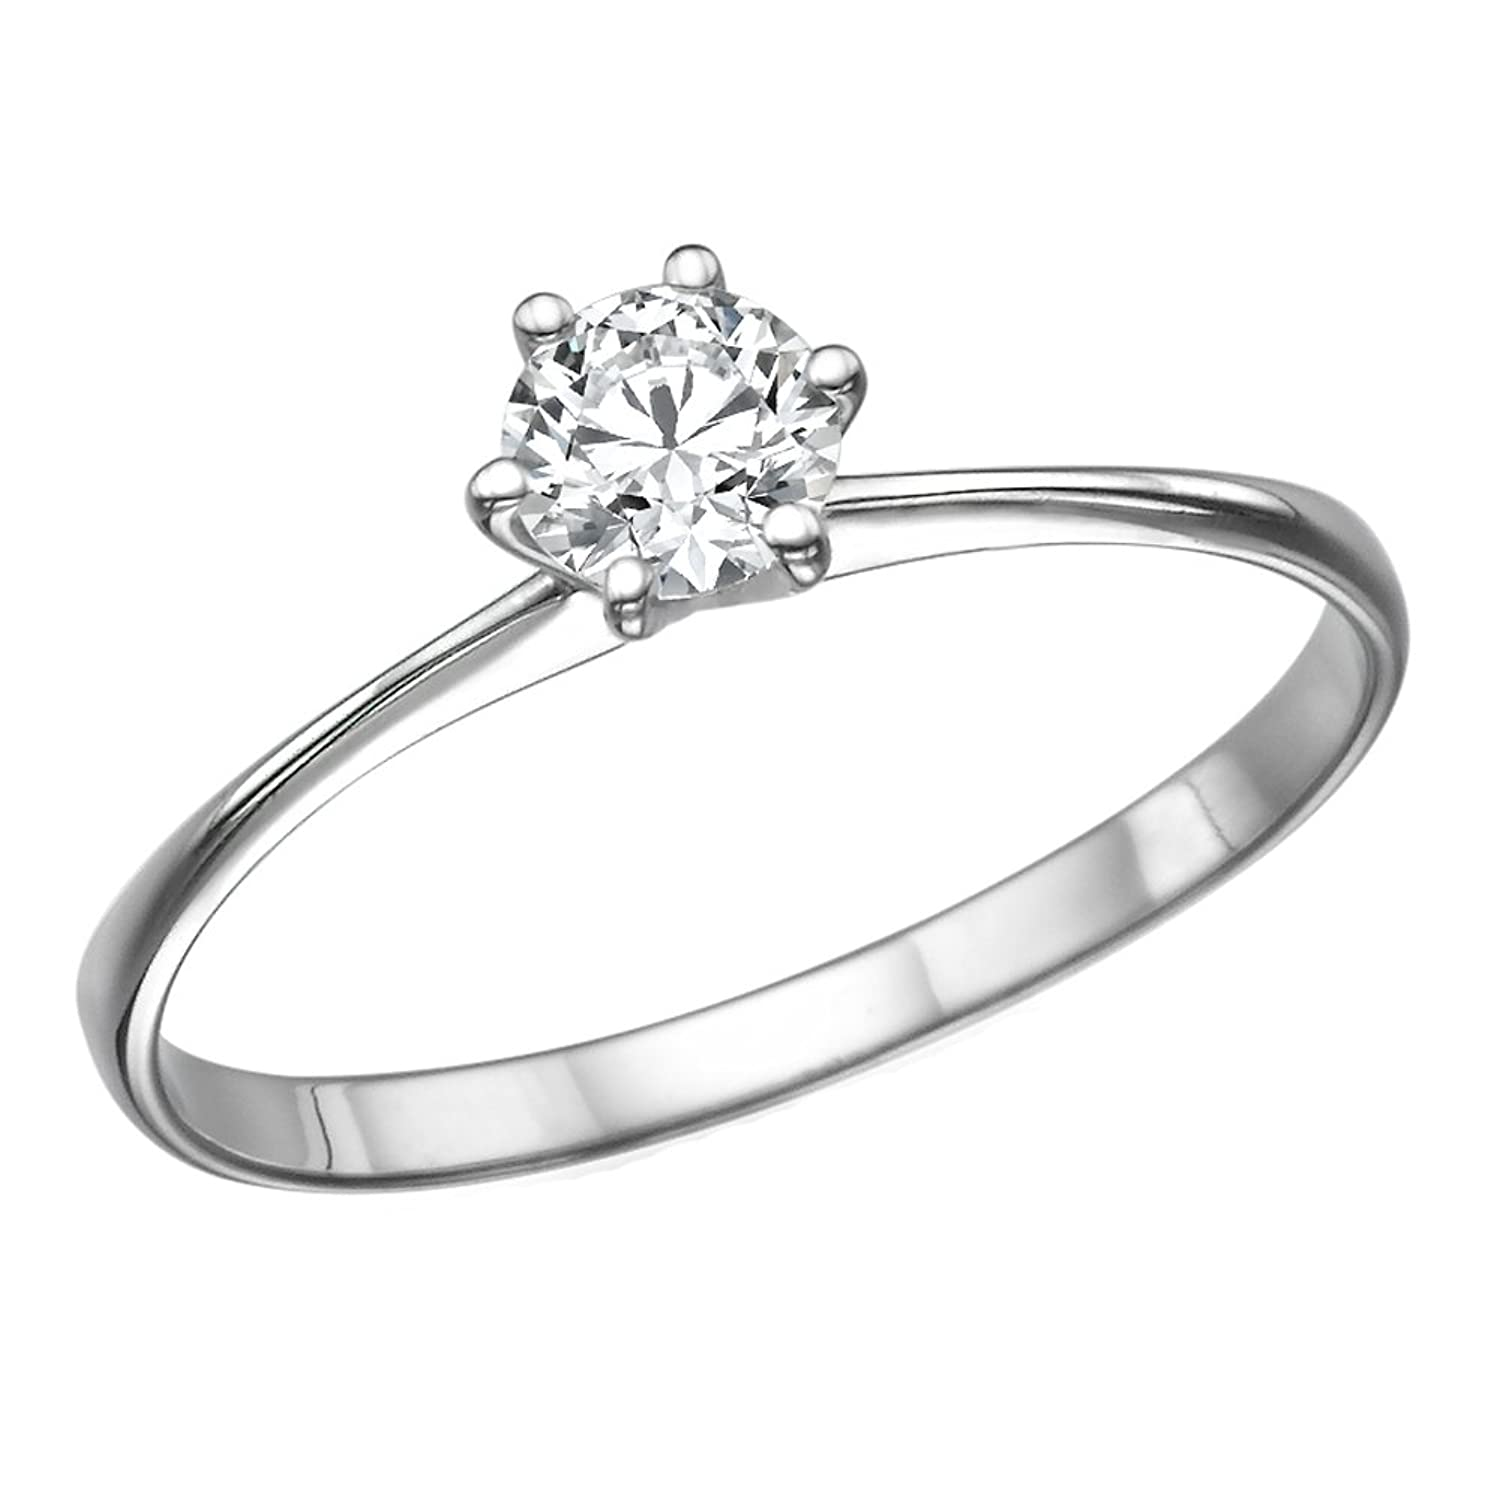 1/5-1/3 ct IGI Certified Diamond Engagement Ring in 14K White Gold (1/5 – 1/3 ct, J-K Color, I1-I2 Clarity)